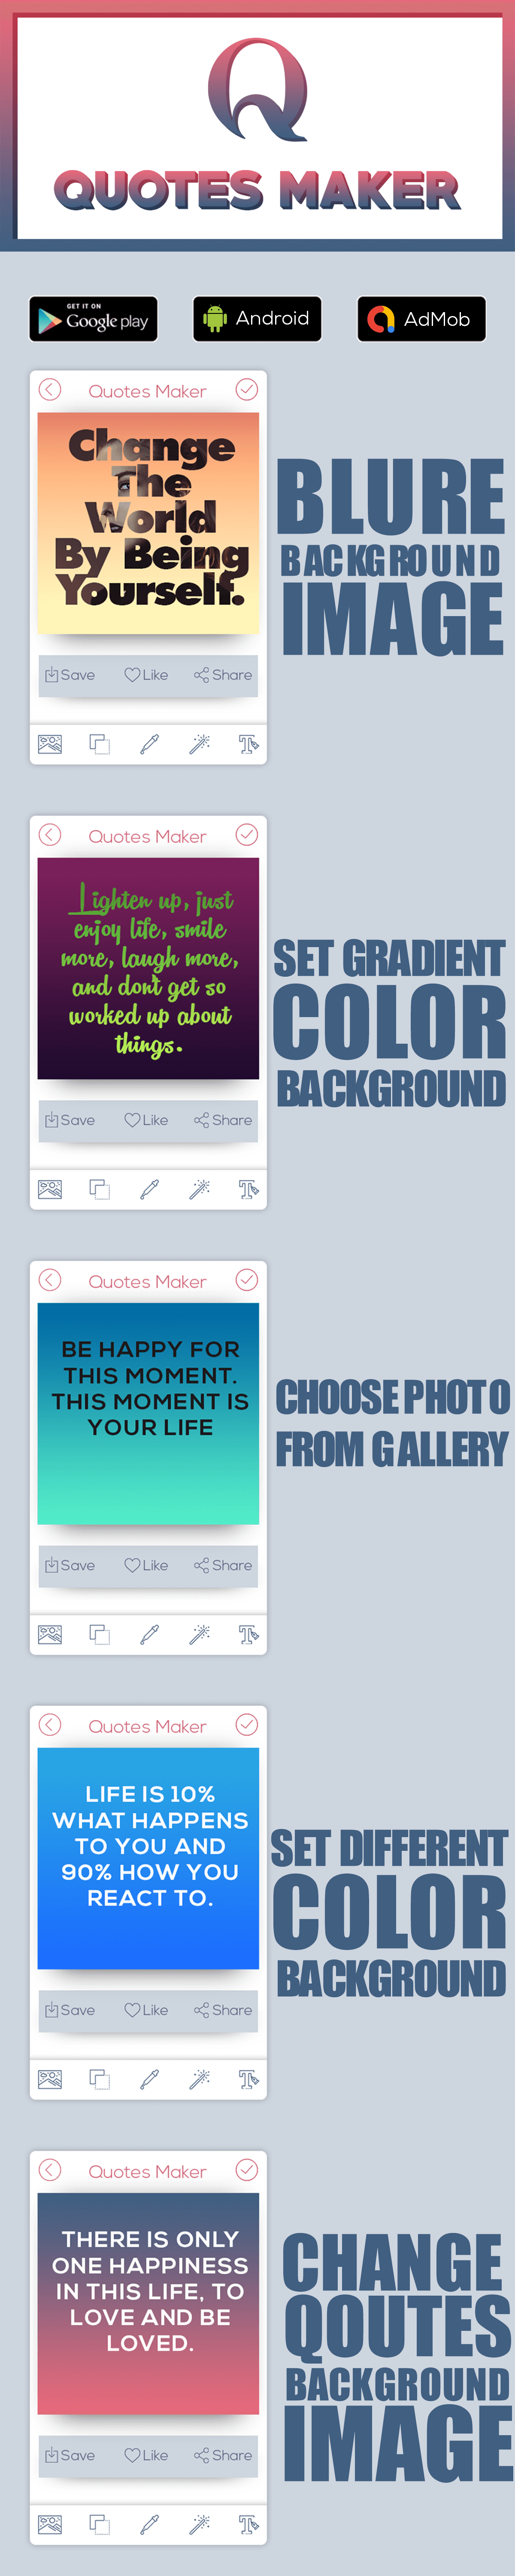 Picture Quotes and Creator |  Quote Maker | Android Ads - 1